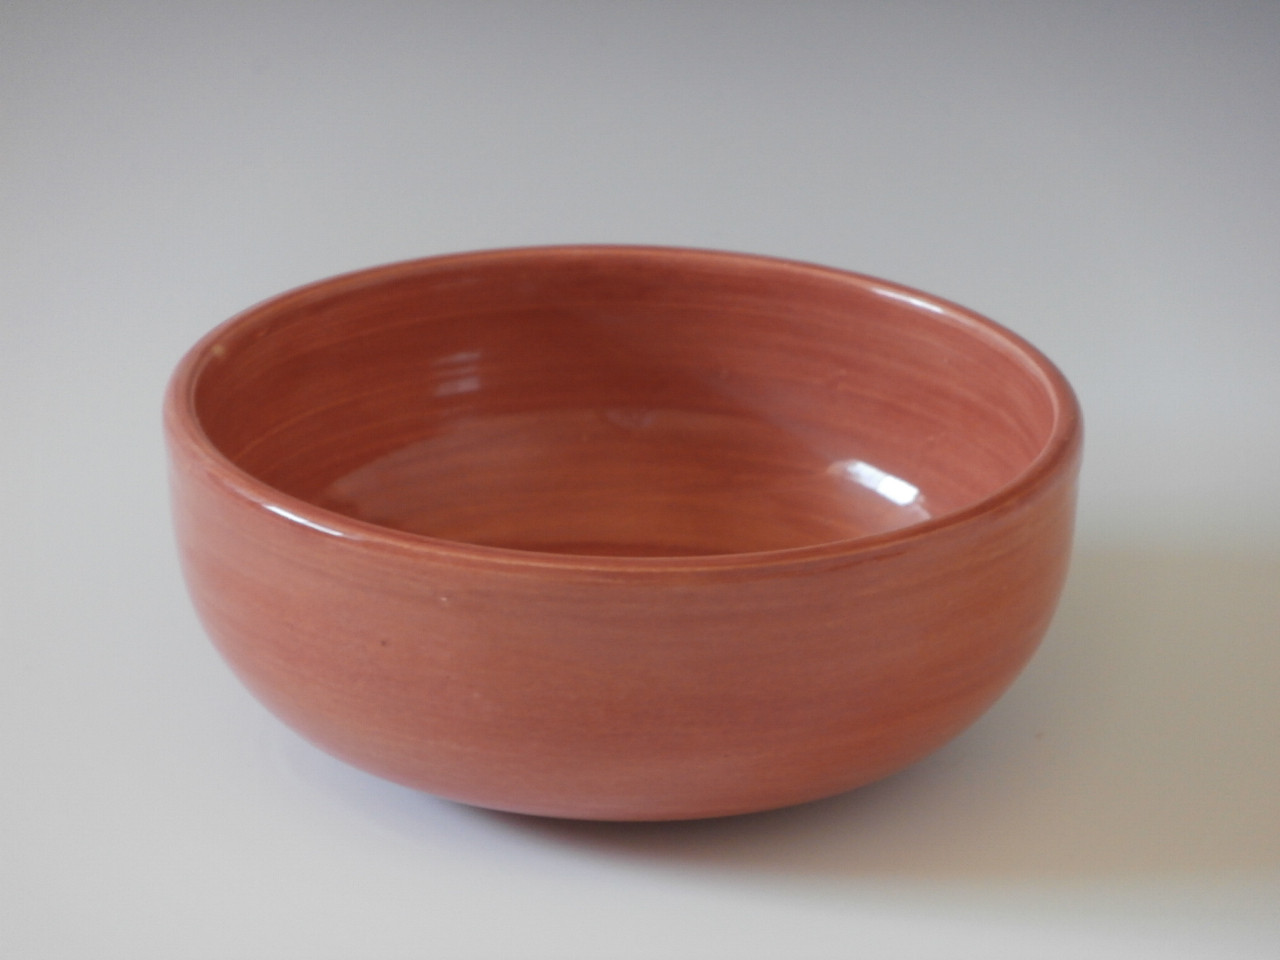 Apricot cereal bowl